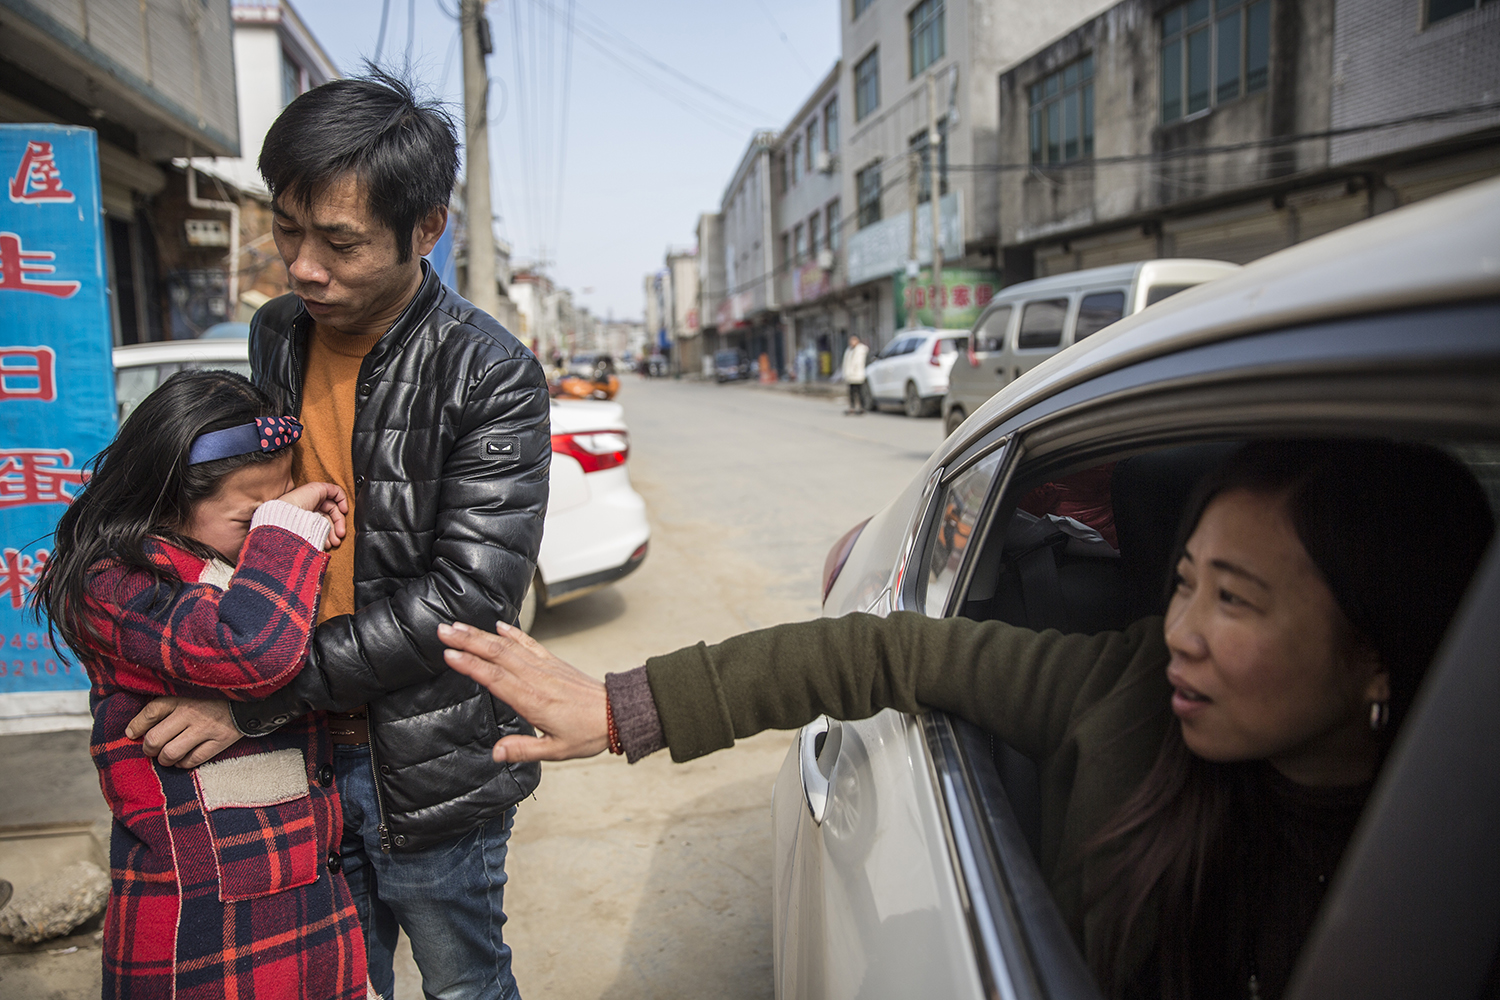 "February 11, at the end of the Lunar New Year holiday, nine-year-old Lü Siqi cries as her mother waves goodbye in Xiangshuitan township, Jiangxi province. Siqi's parents both work in Hangzhou and visit her twice a year—once on the Lunar New Year and once on her birthday. She is among an estimated 9 million so-called ""left-behind children"" currently living in the Chinese countryside without their parents. (Chen Ronghui/Sixth Tone)"